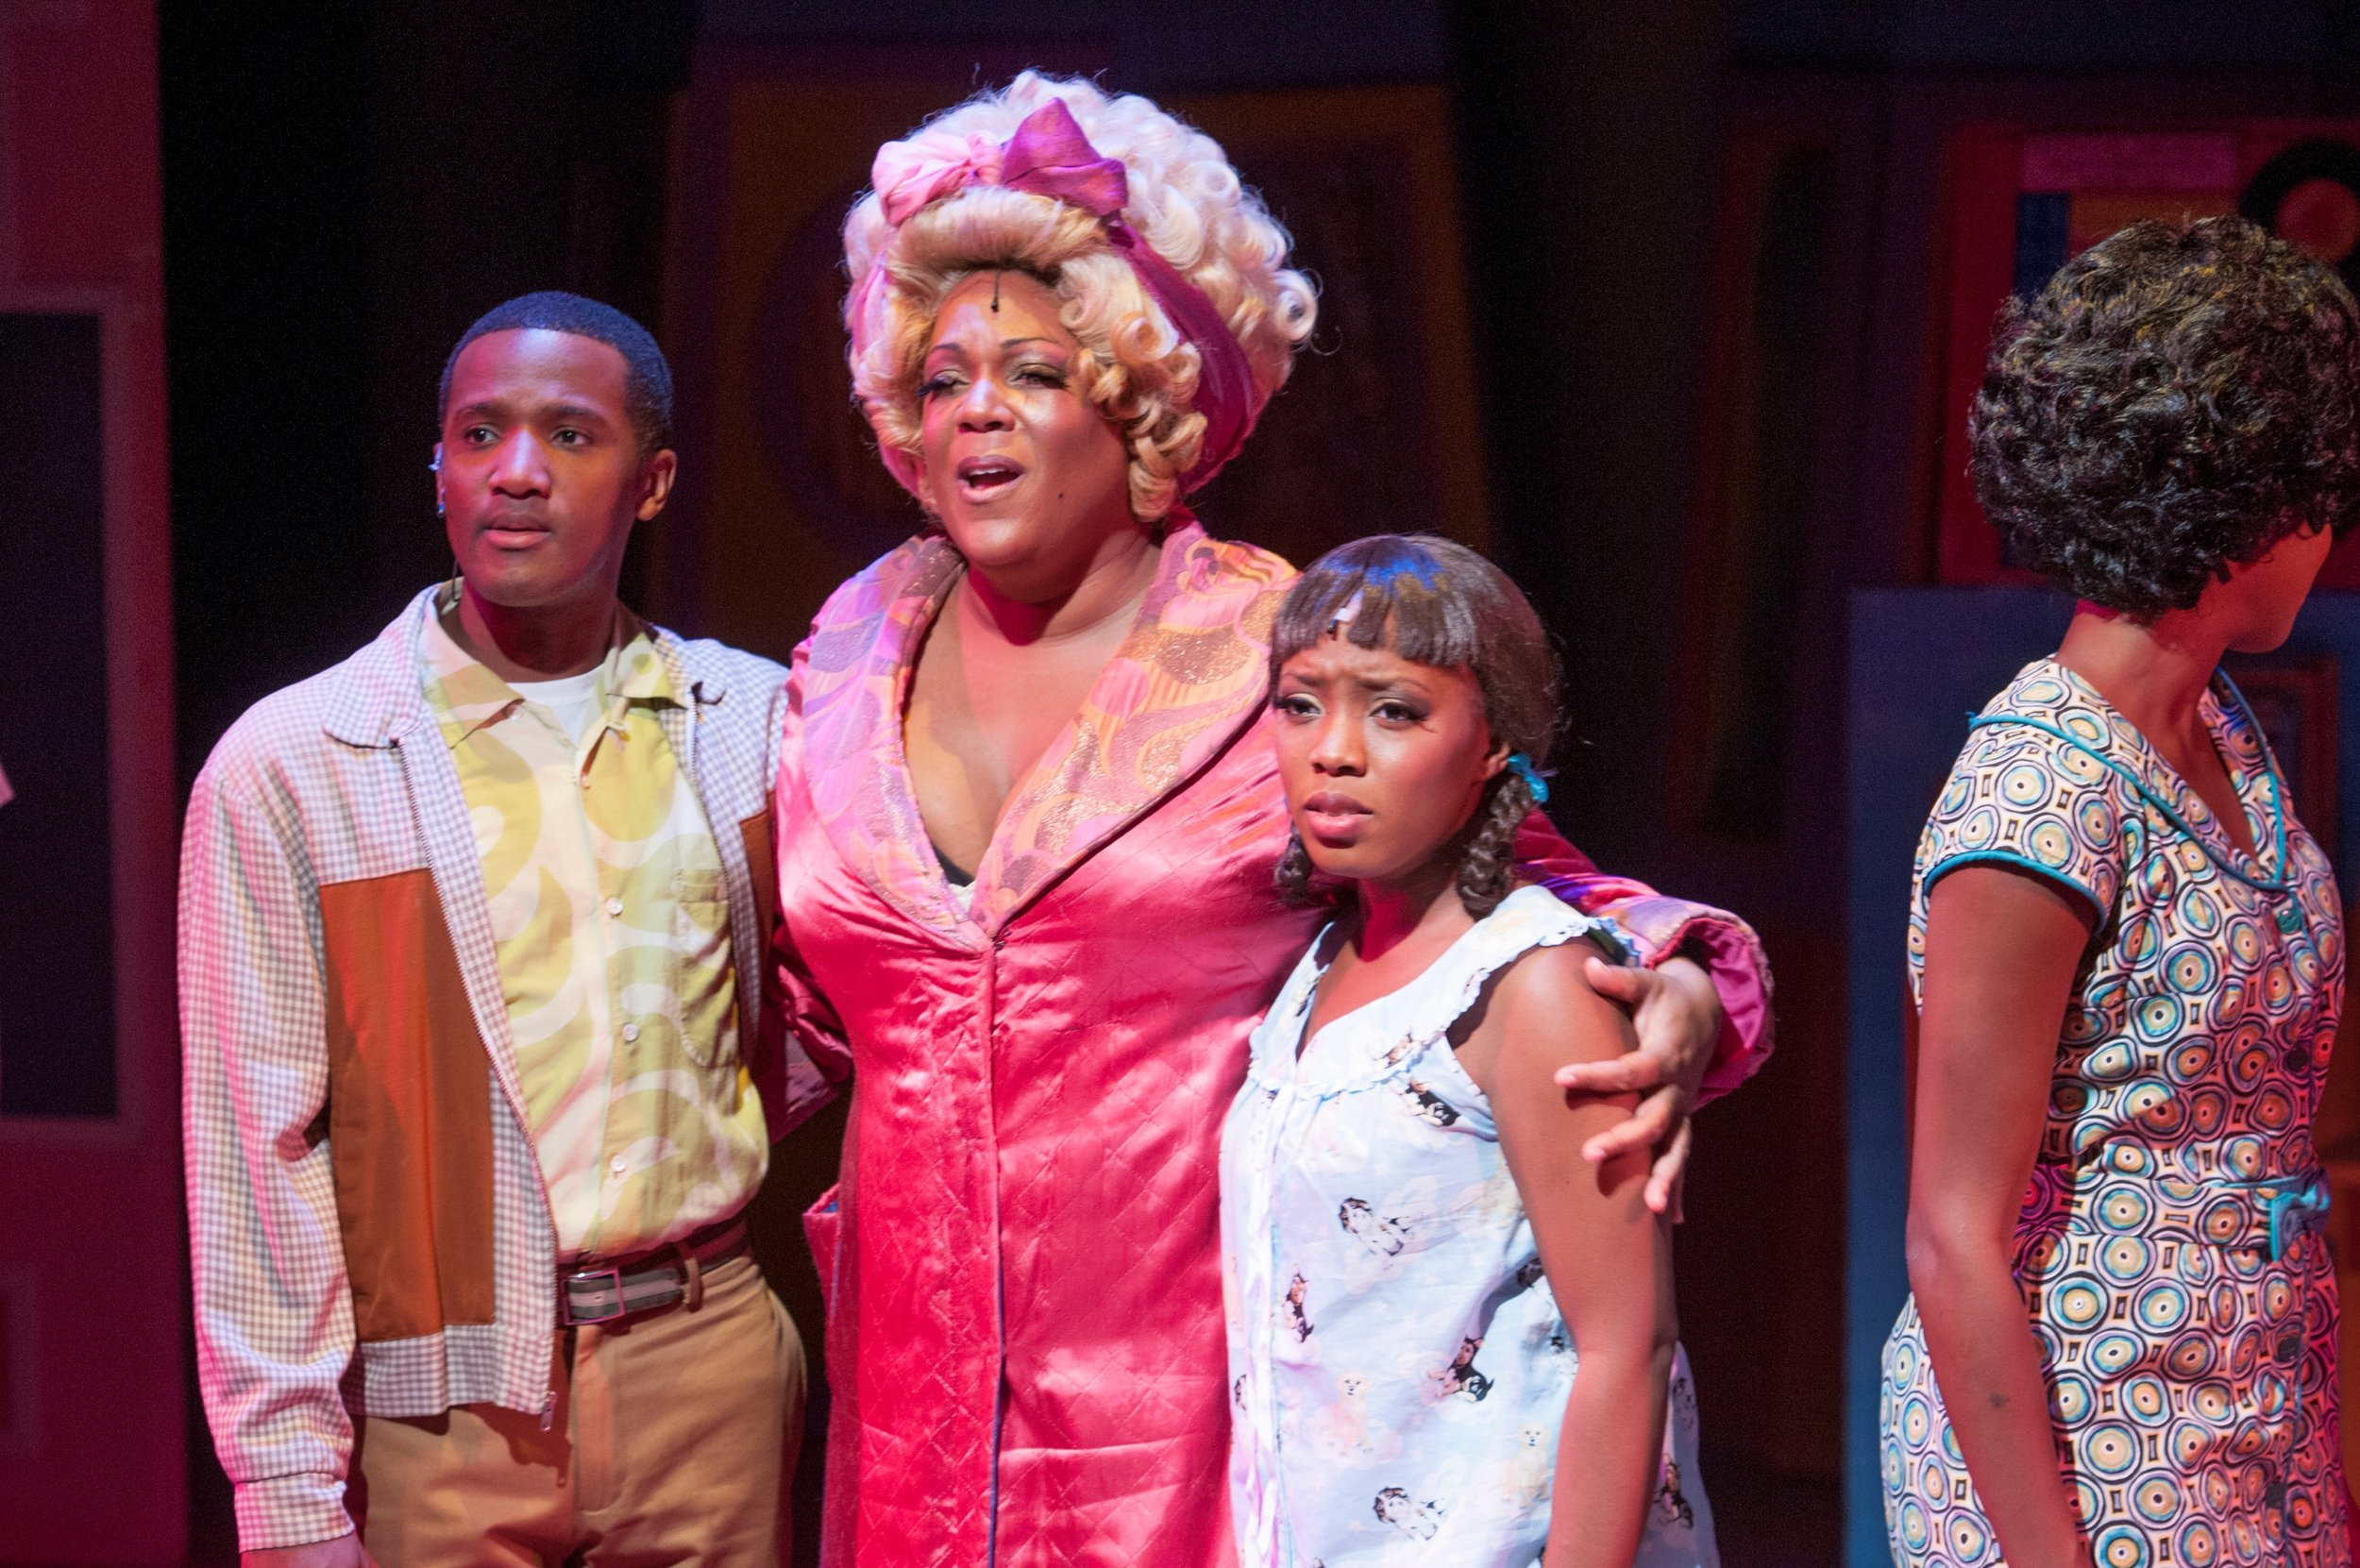 "From left, Melvin Brandon Logan as Seaweed, Jennifer Fouché as Motormouth Maybelle, and Tavia Riveé as Little Inez in Florida Studio Theatre's production of ""Hairspray."" Maria Lyle Photo"